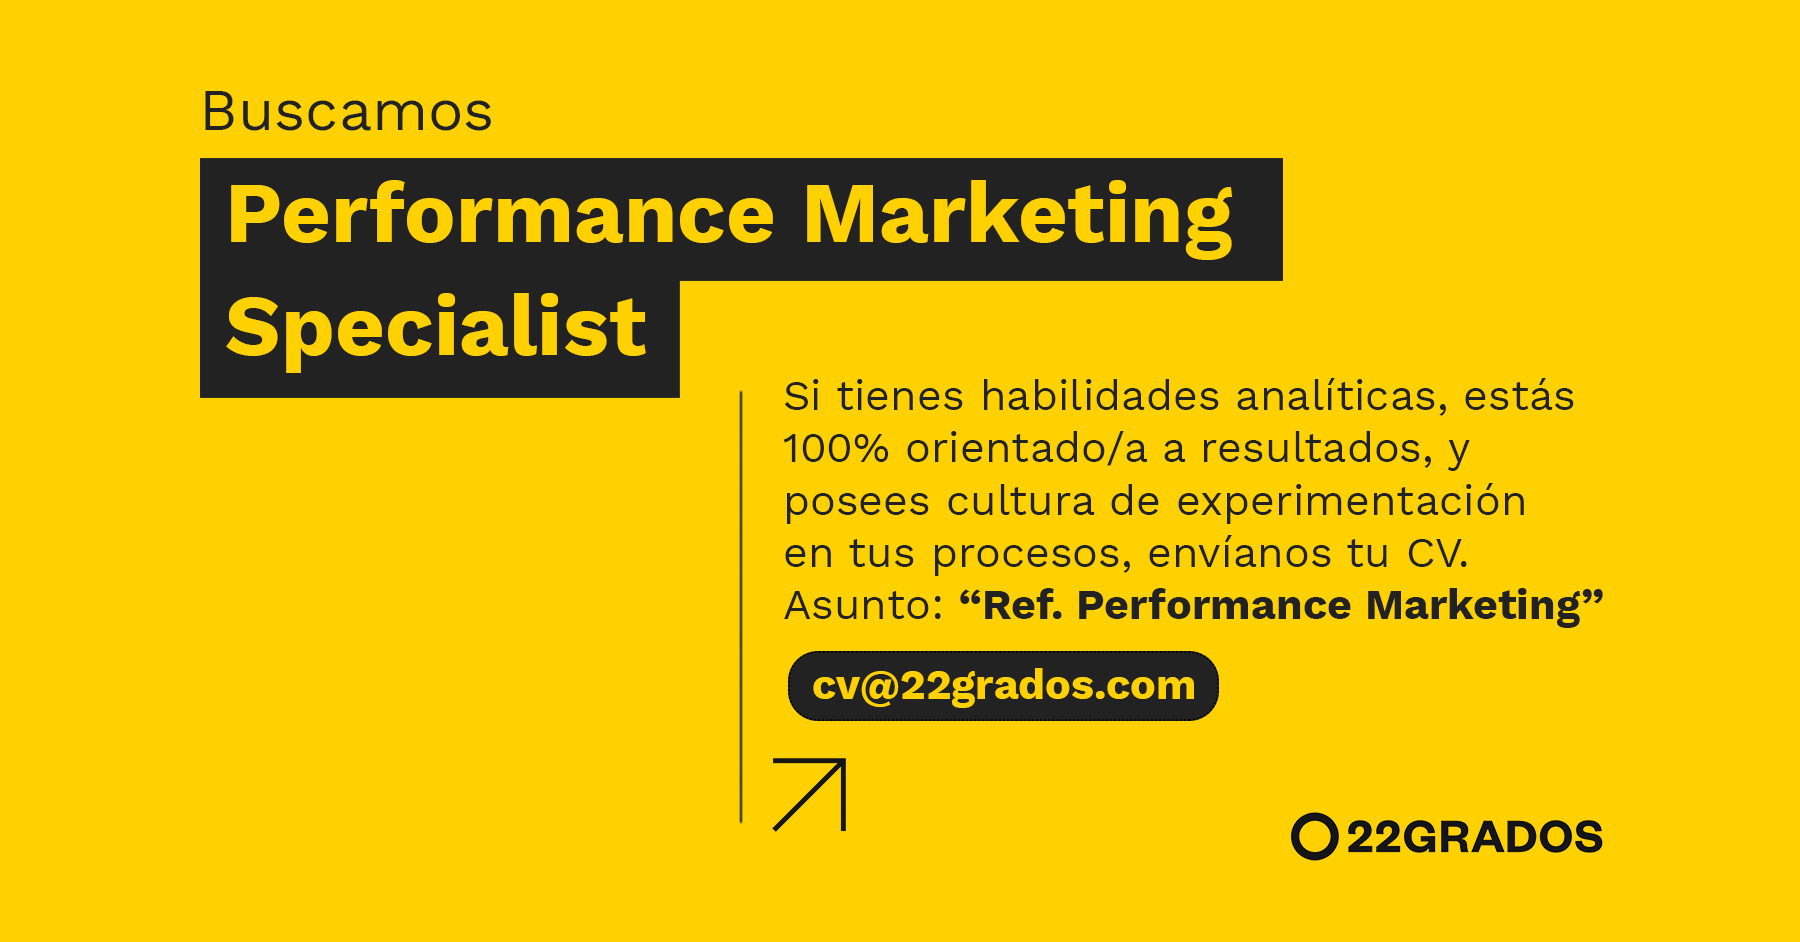 Buscamos Performance Marketing Specialist